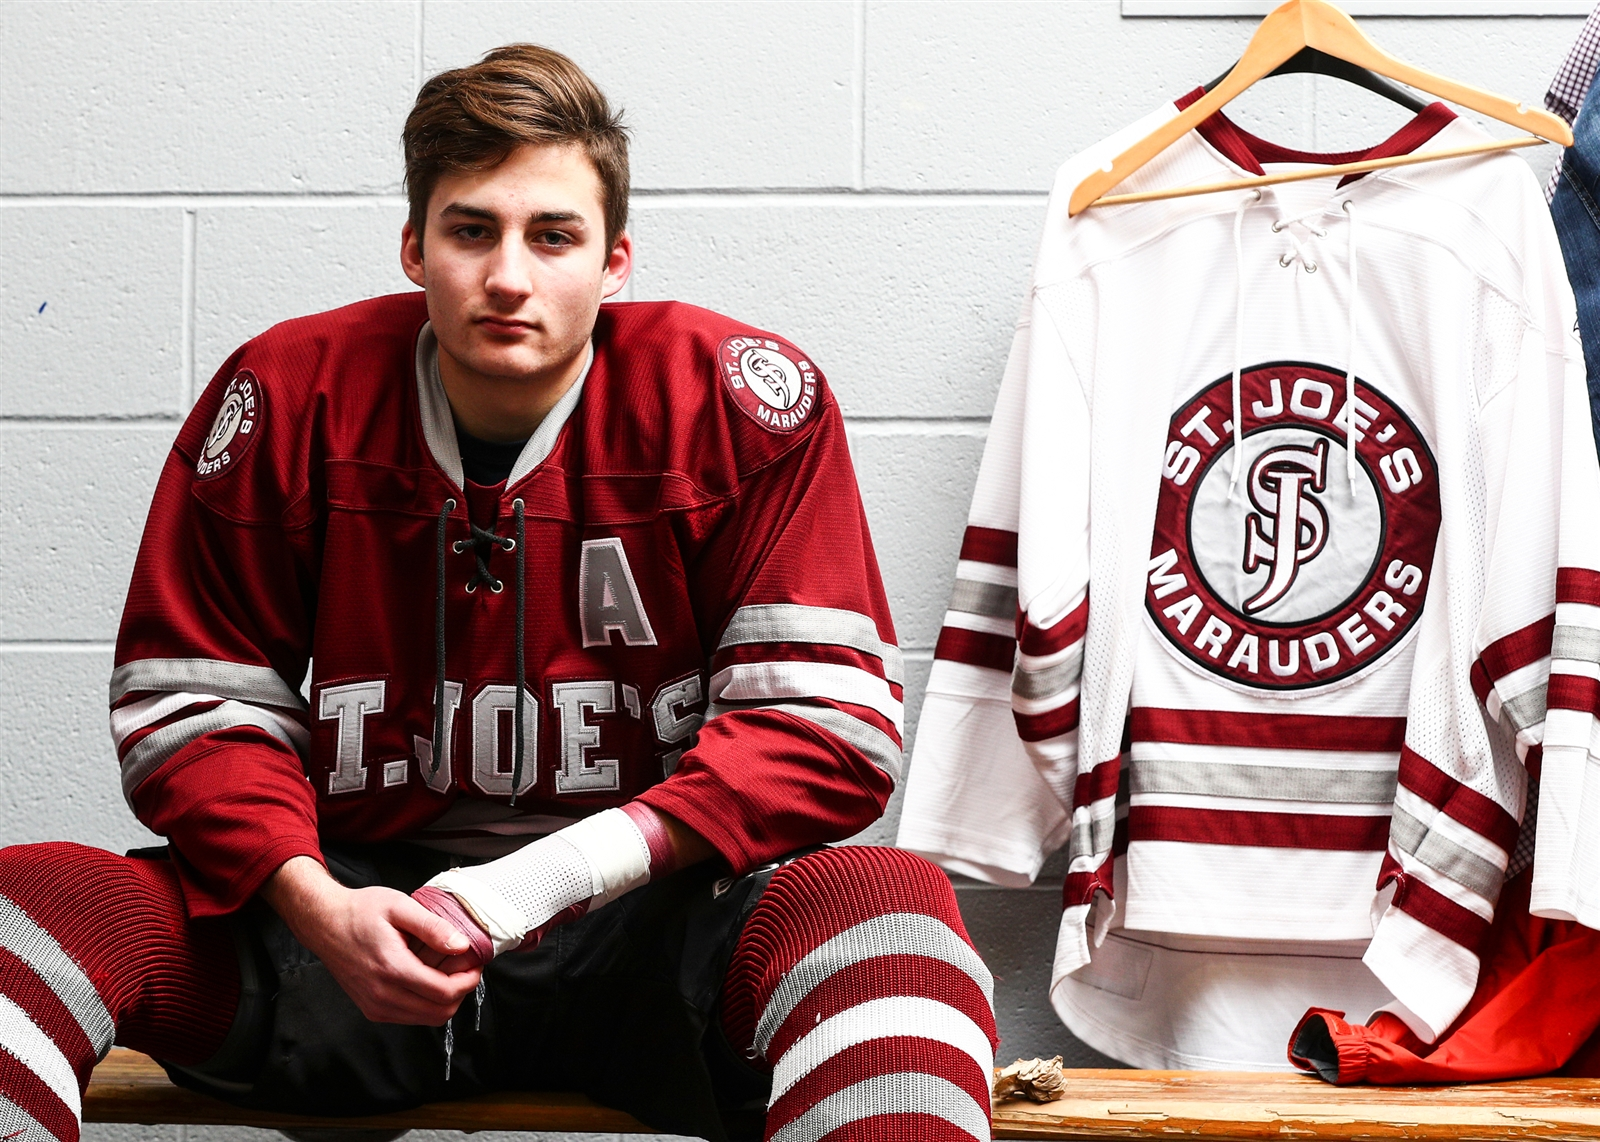 St. Joe's senior Shane Scheeler is holding out hope that he can play this season after suffering tendon and artery injury.